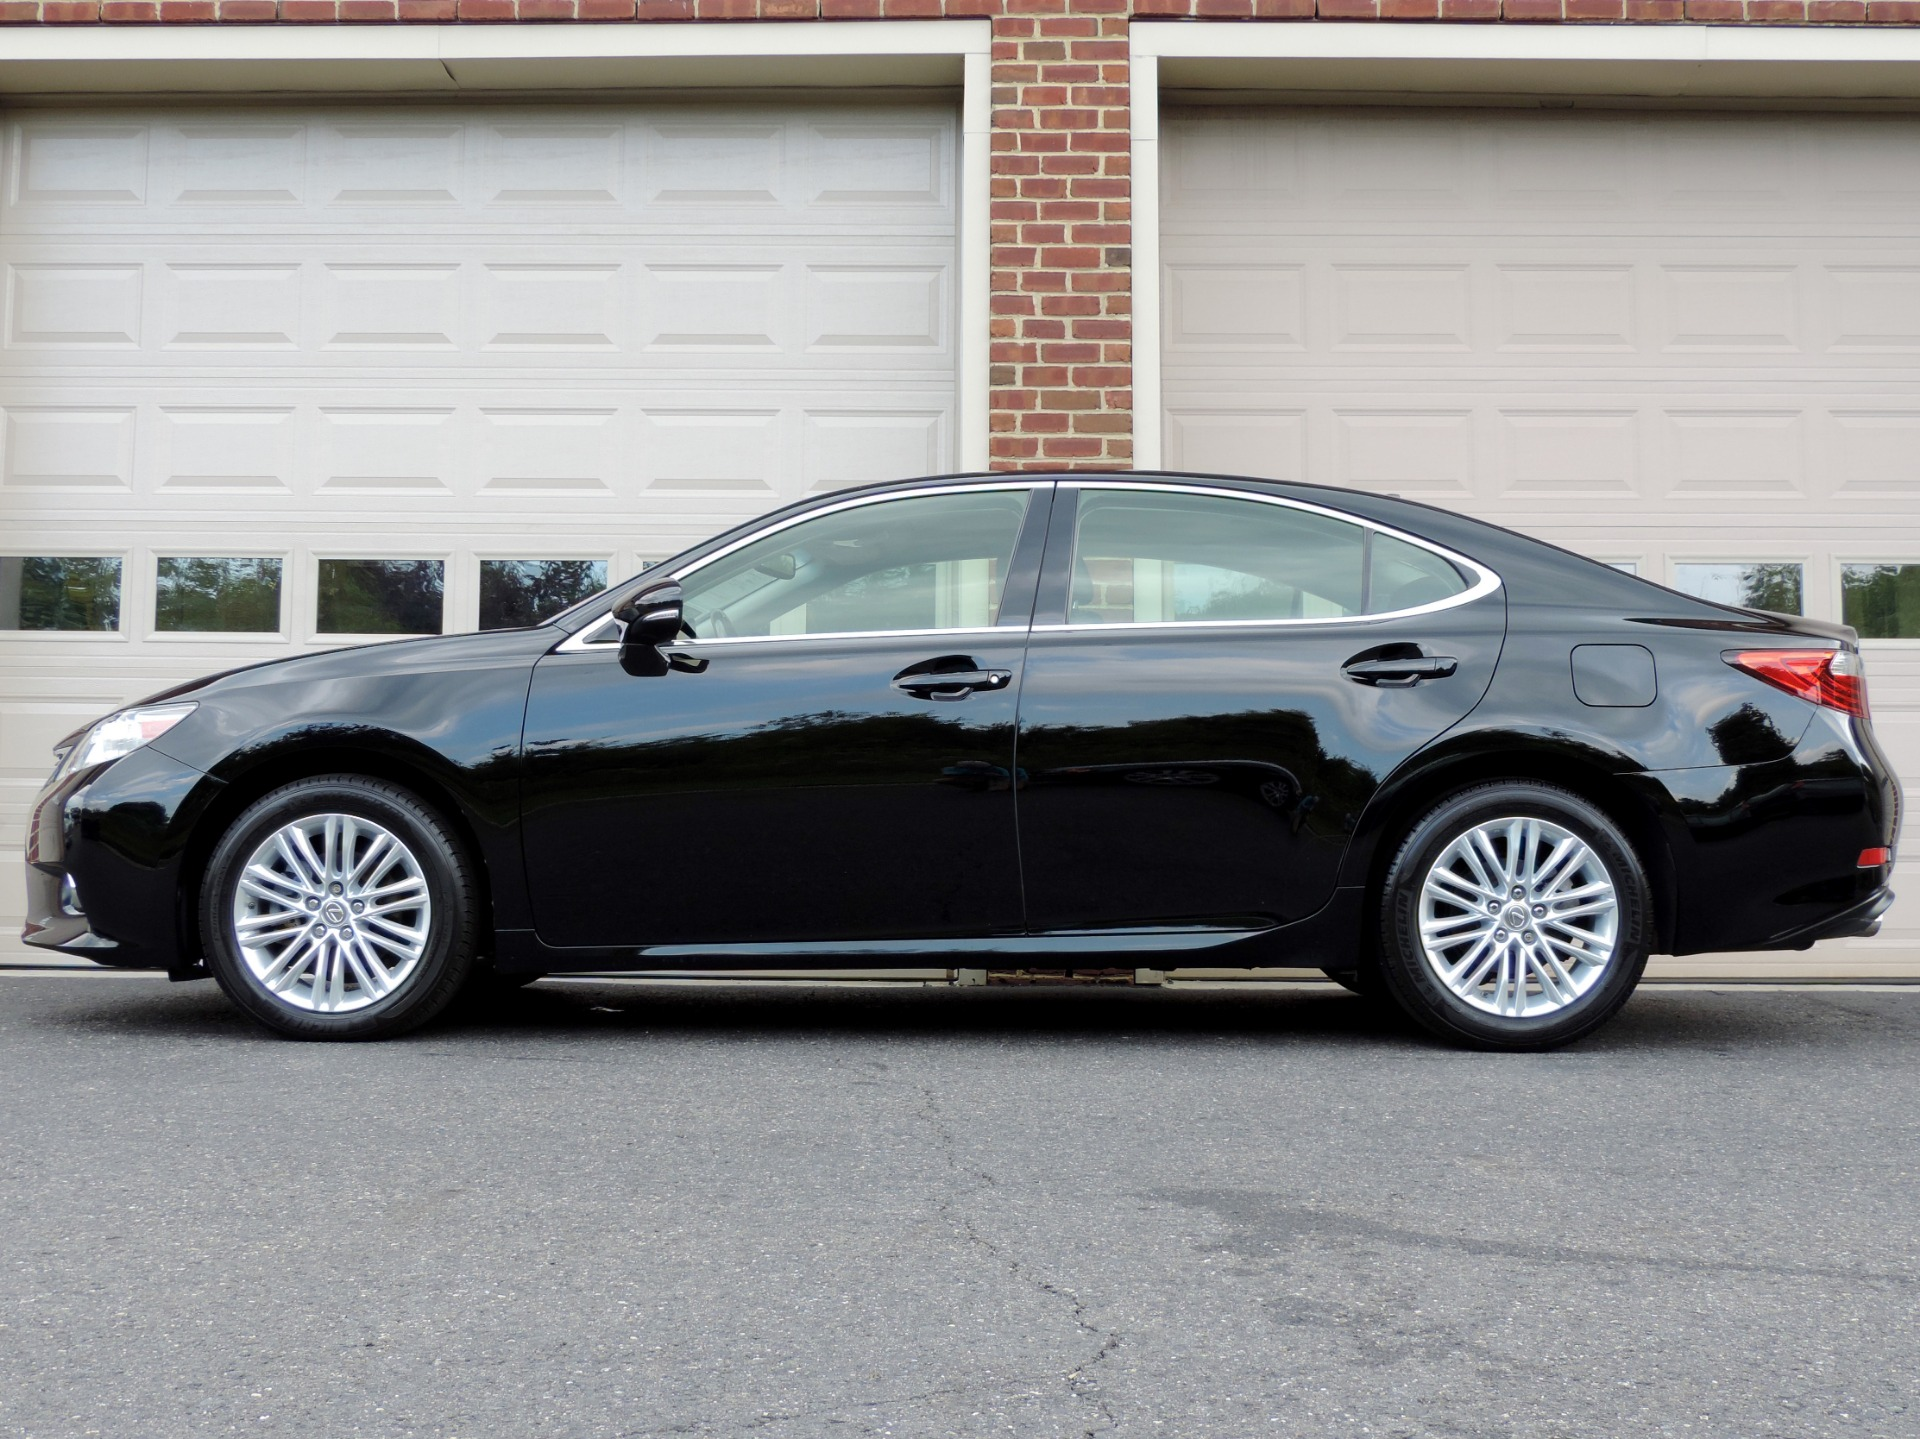 2014 lexus es 350 sedan stock 125024 for sale near edgewater park nj nj lexus dealer. Black Bedroom Furniture Sets. Home Design Ideas